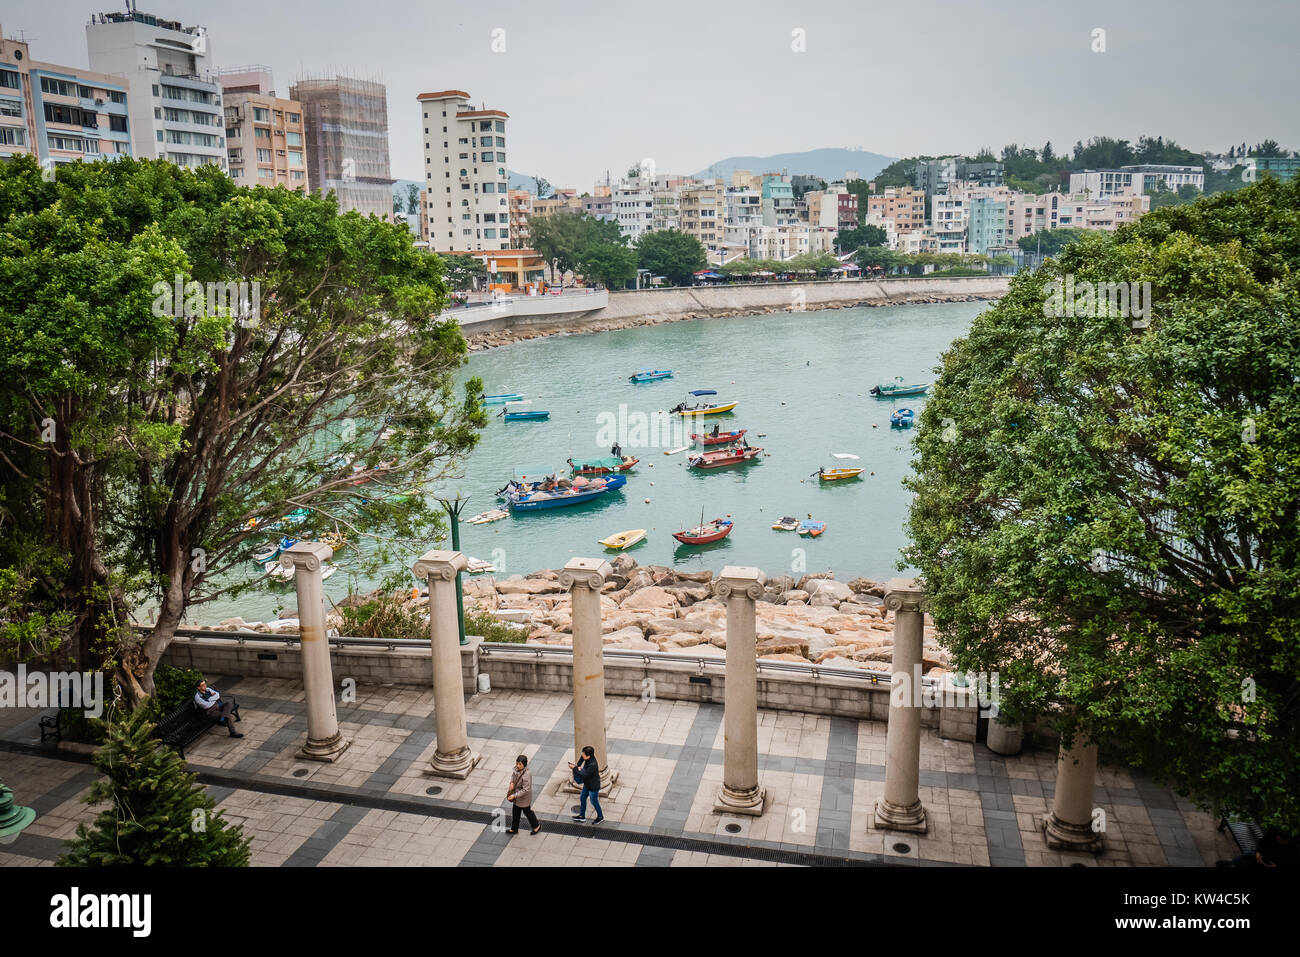 hong kong stanley is a seaside village with a laid back vibe popular with tourists - Stock Image